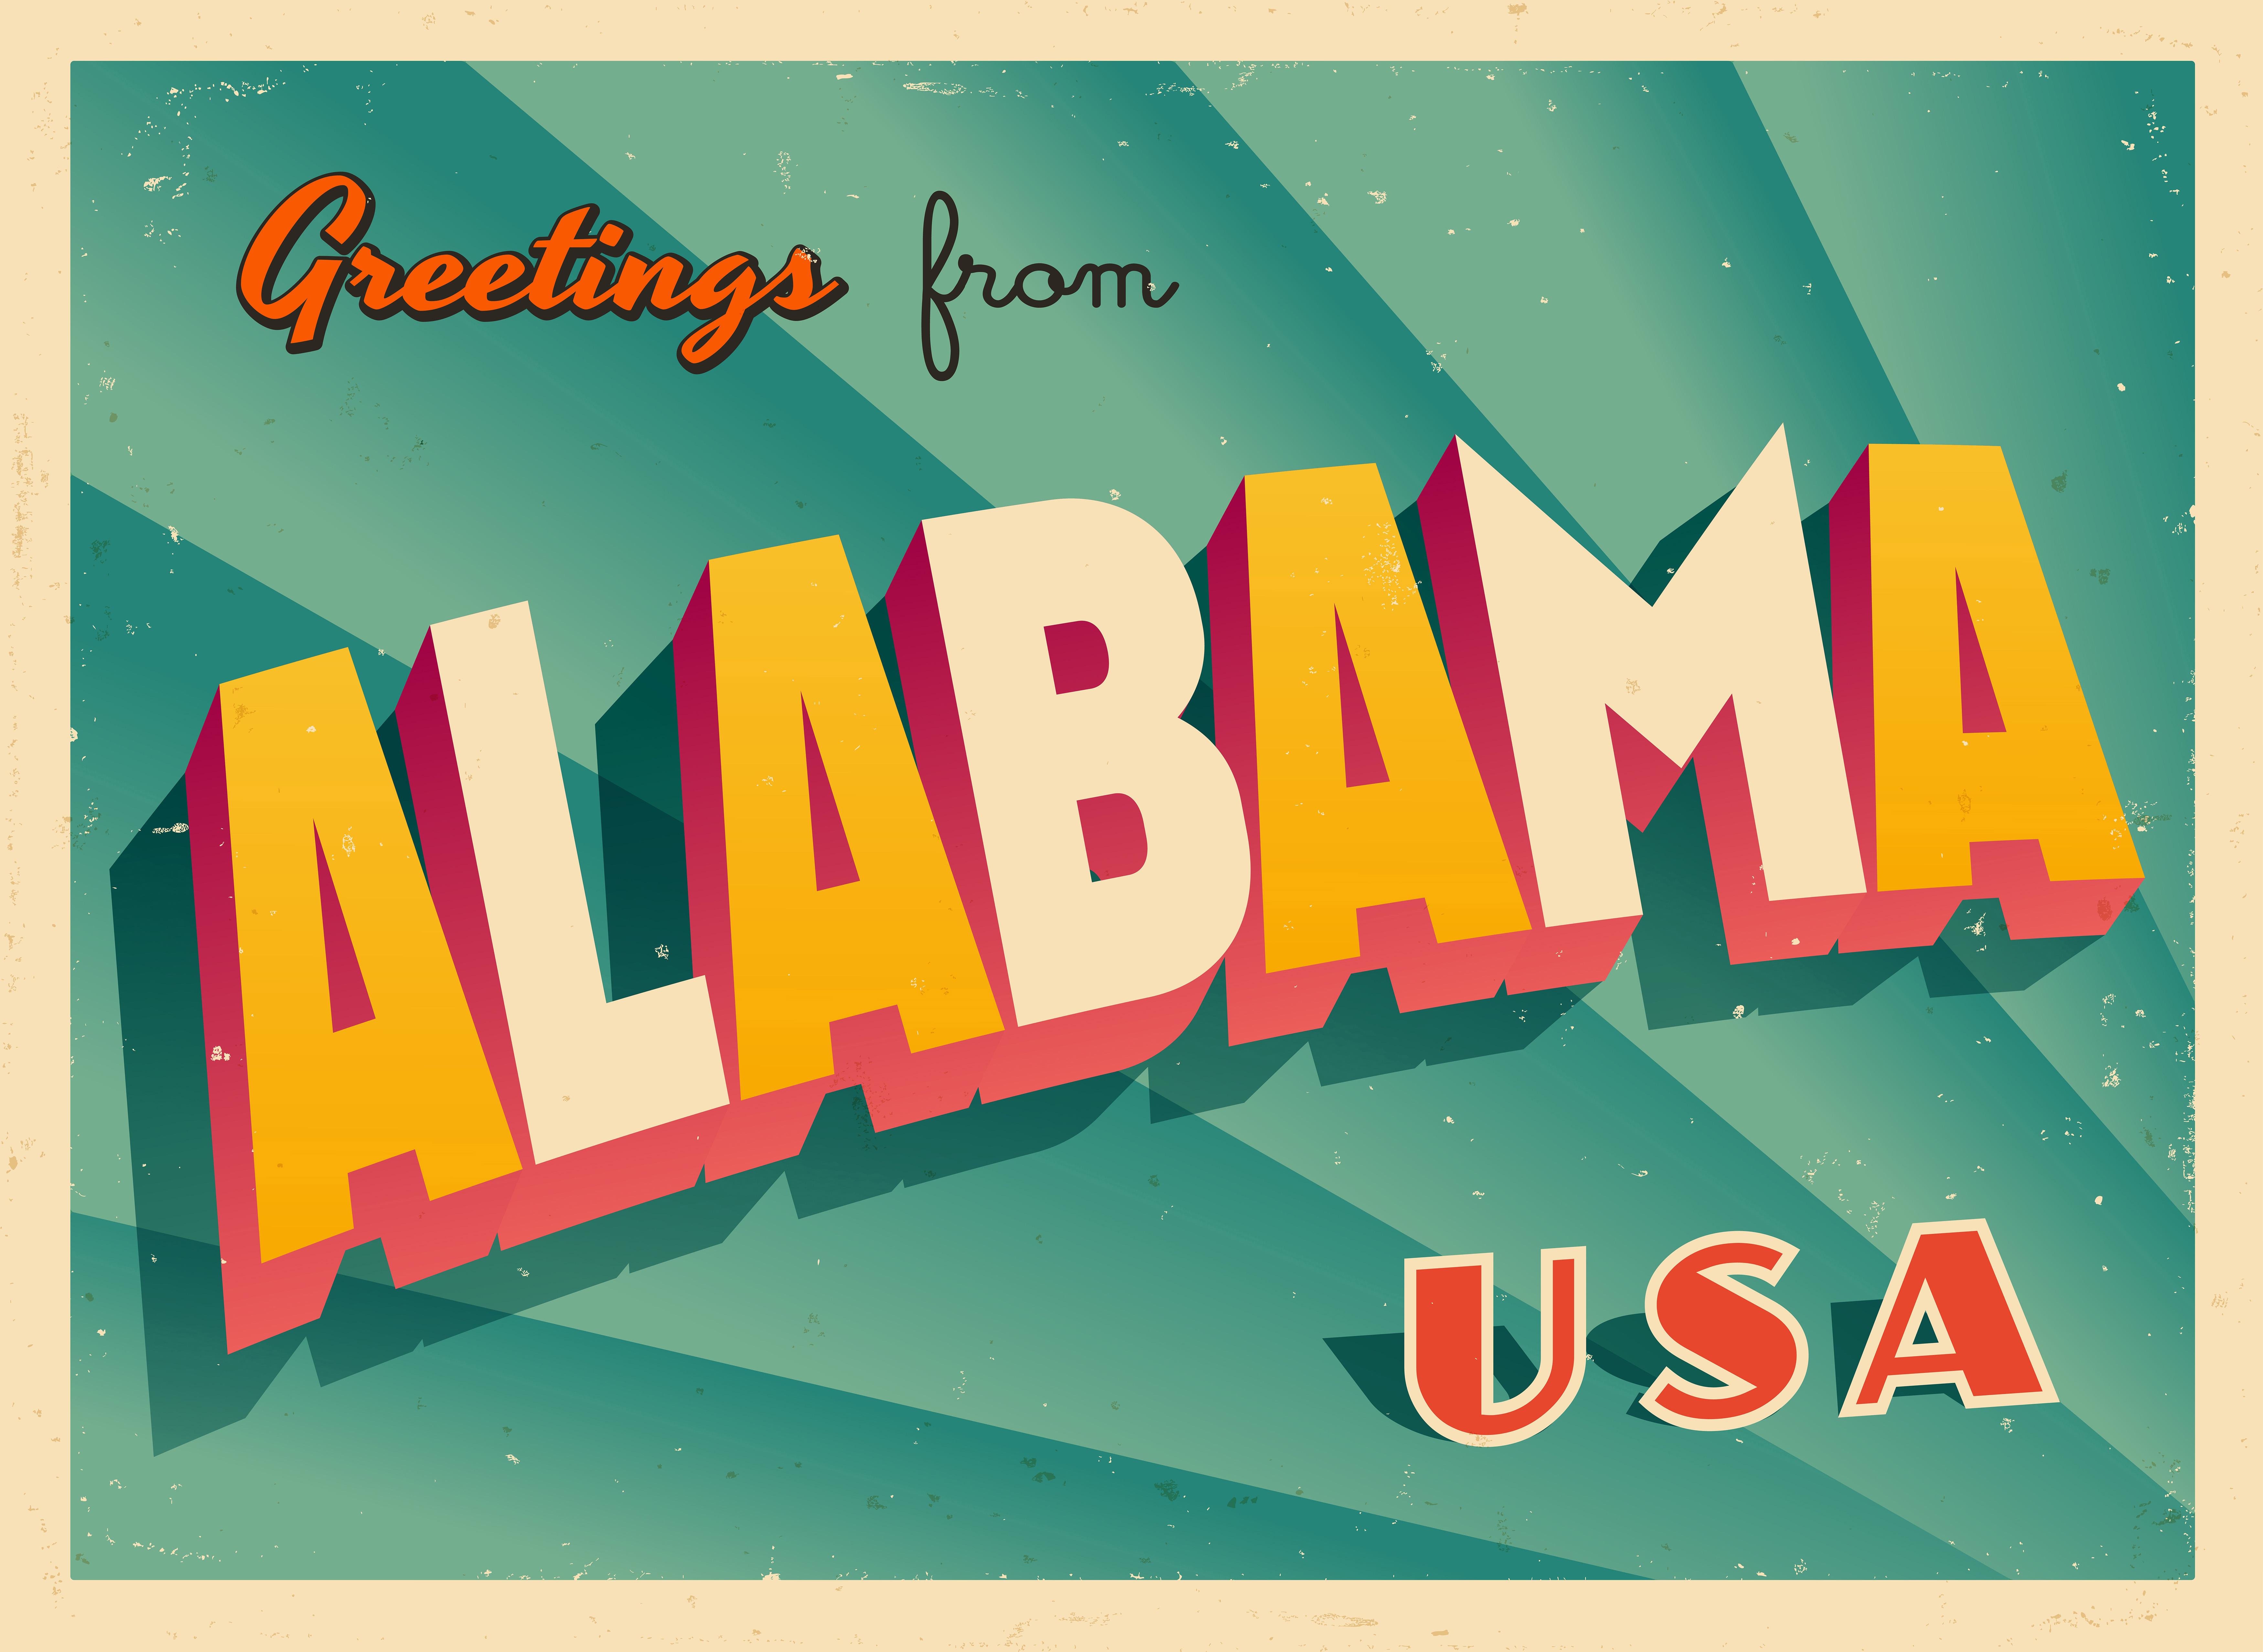 retro greeting from alabama postcard